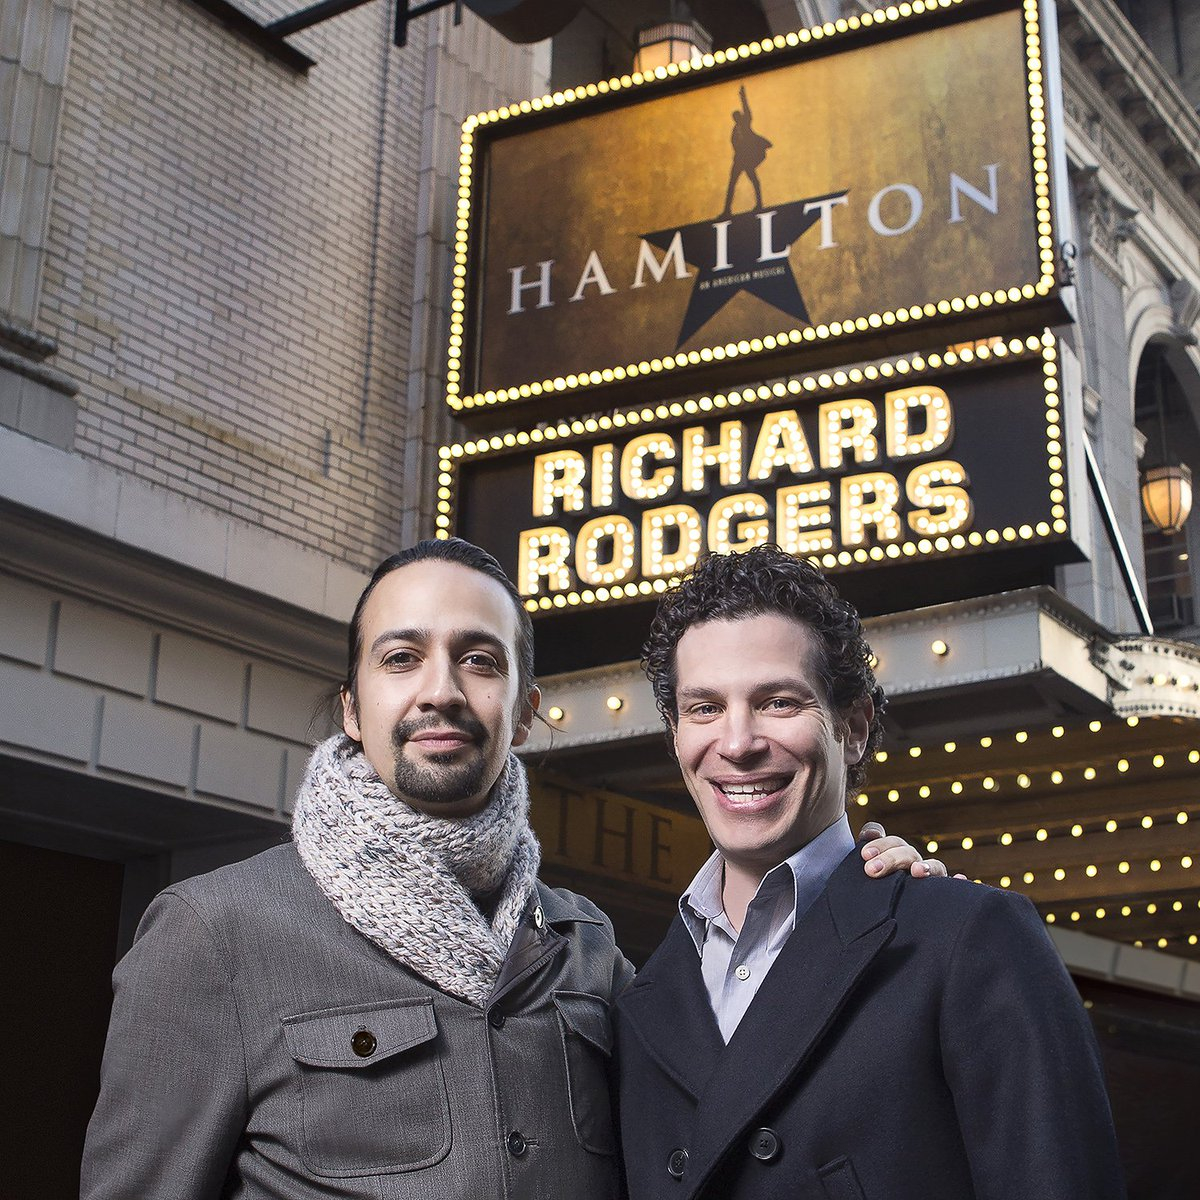 Wesleyan announces #HamiltonPrize with 4-yr full tuition scholarship @Lin_Manuel #ThomasKail https://t.co/20txlYLfQ7 https://t.co/HoloPkCfZO